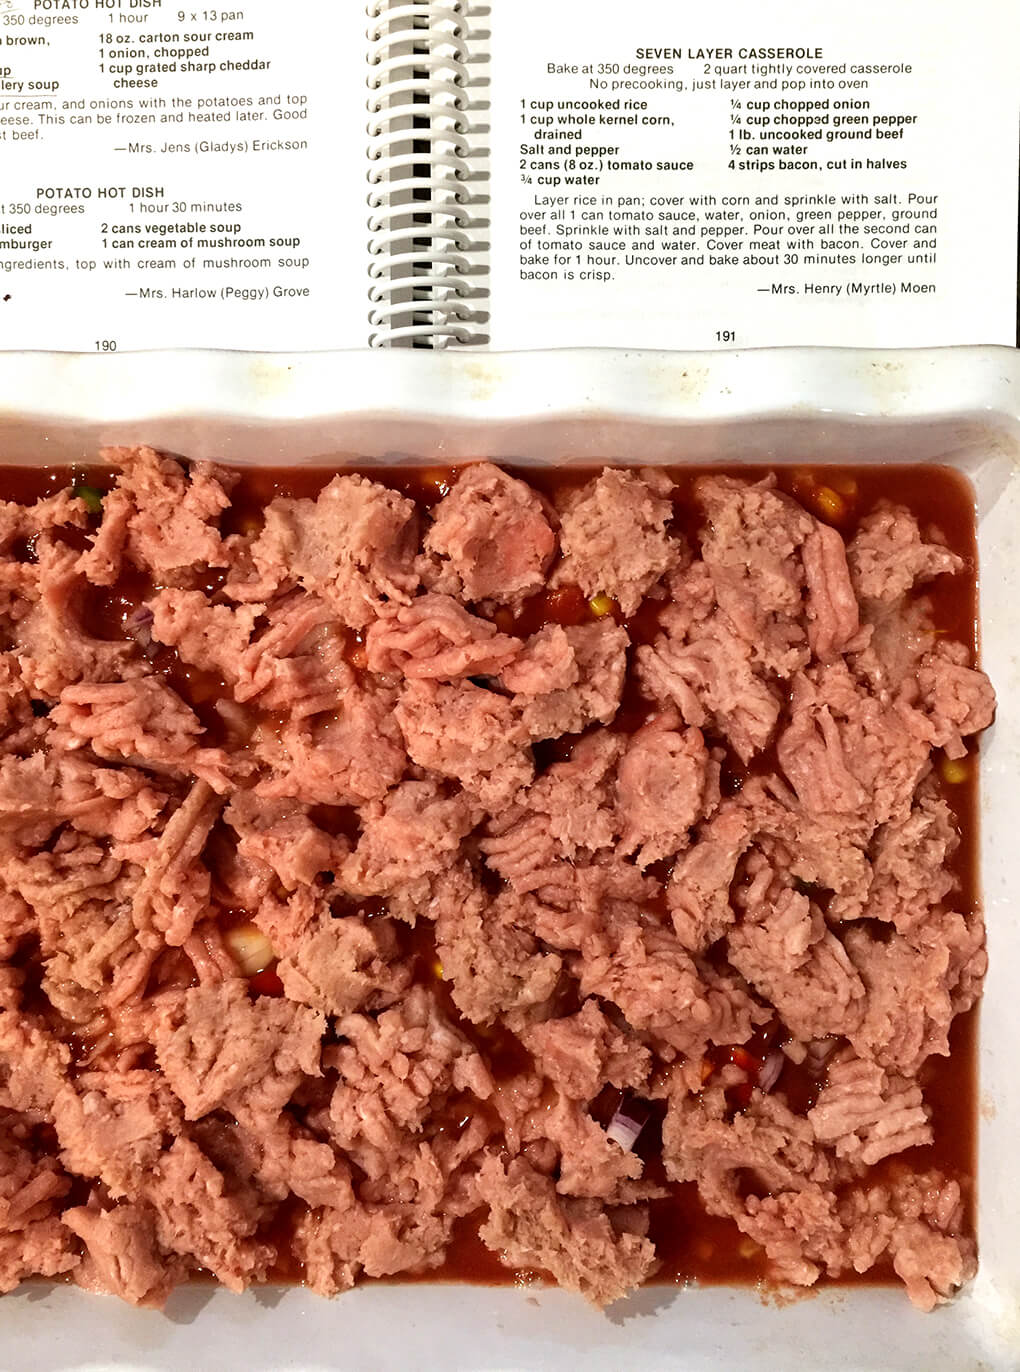 Seven Layer Casserole sarahkayhoffman.com Healthy Pantry